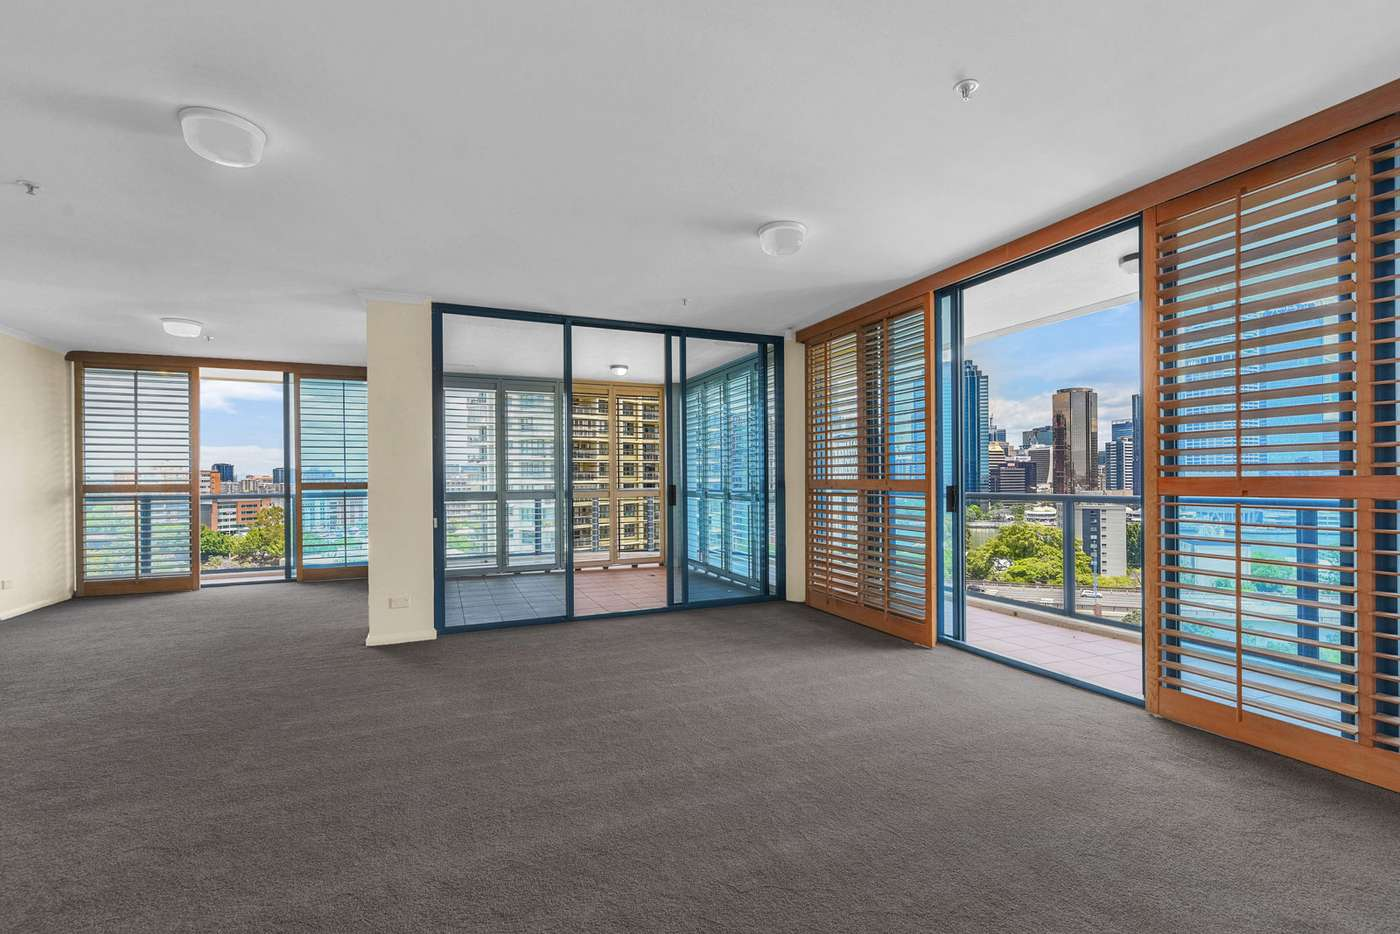 Main view of Homely apartment listing, 74/8 Goodwin Street, Kangaroo Point QLD 4169